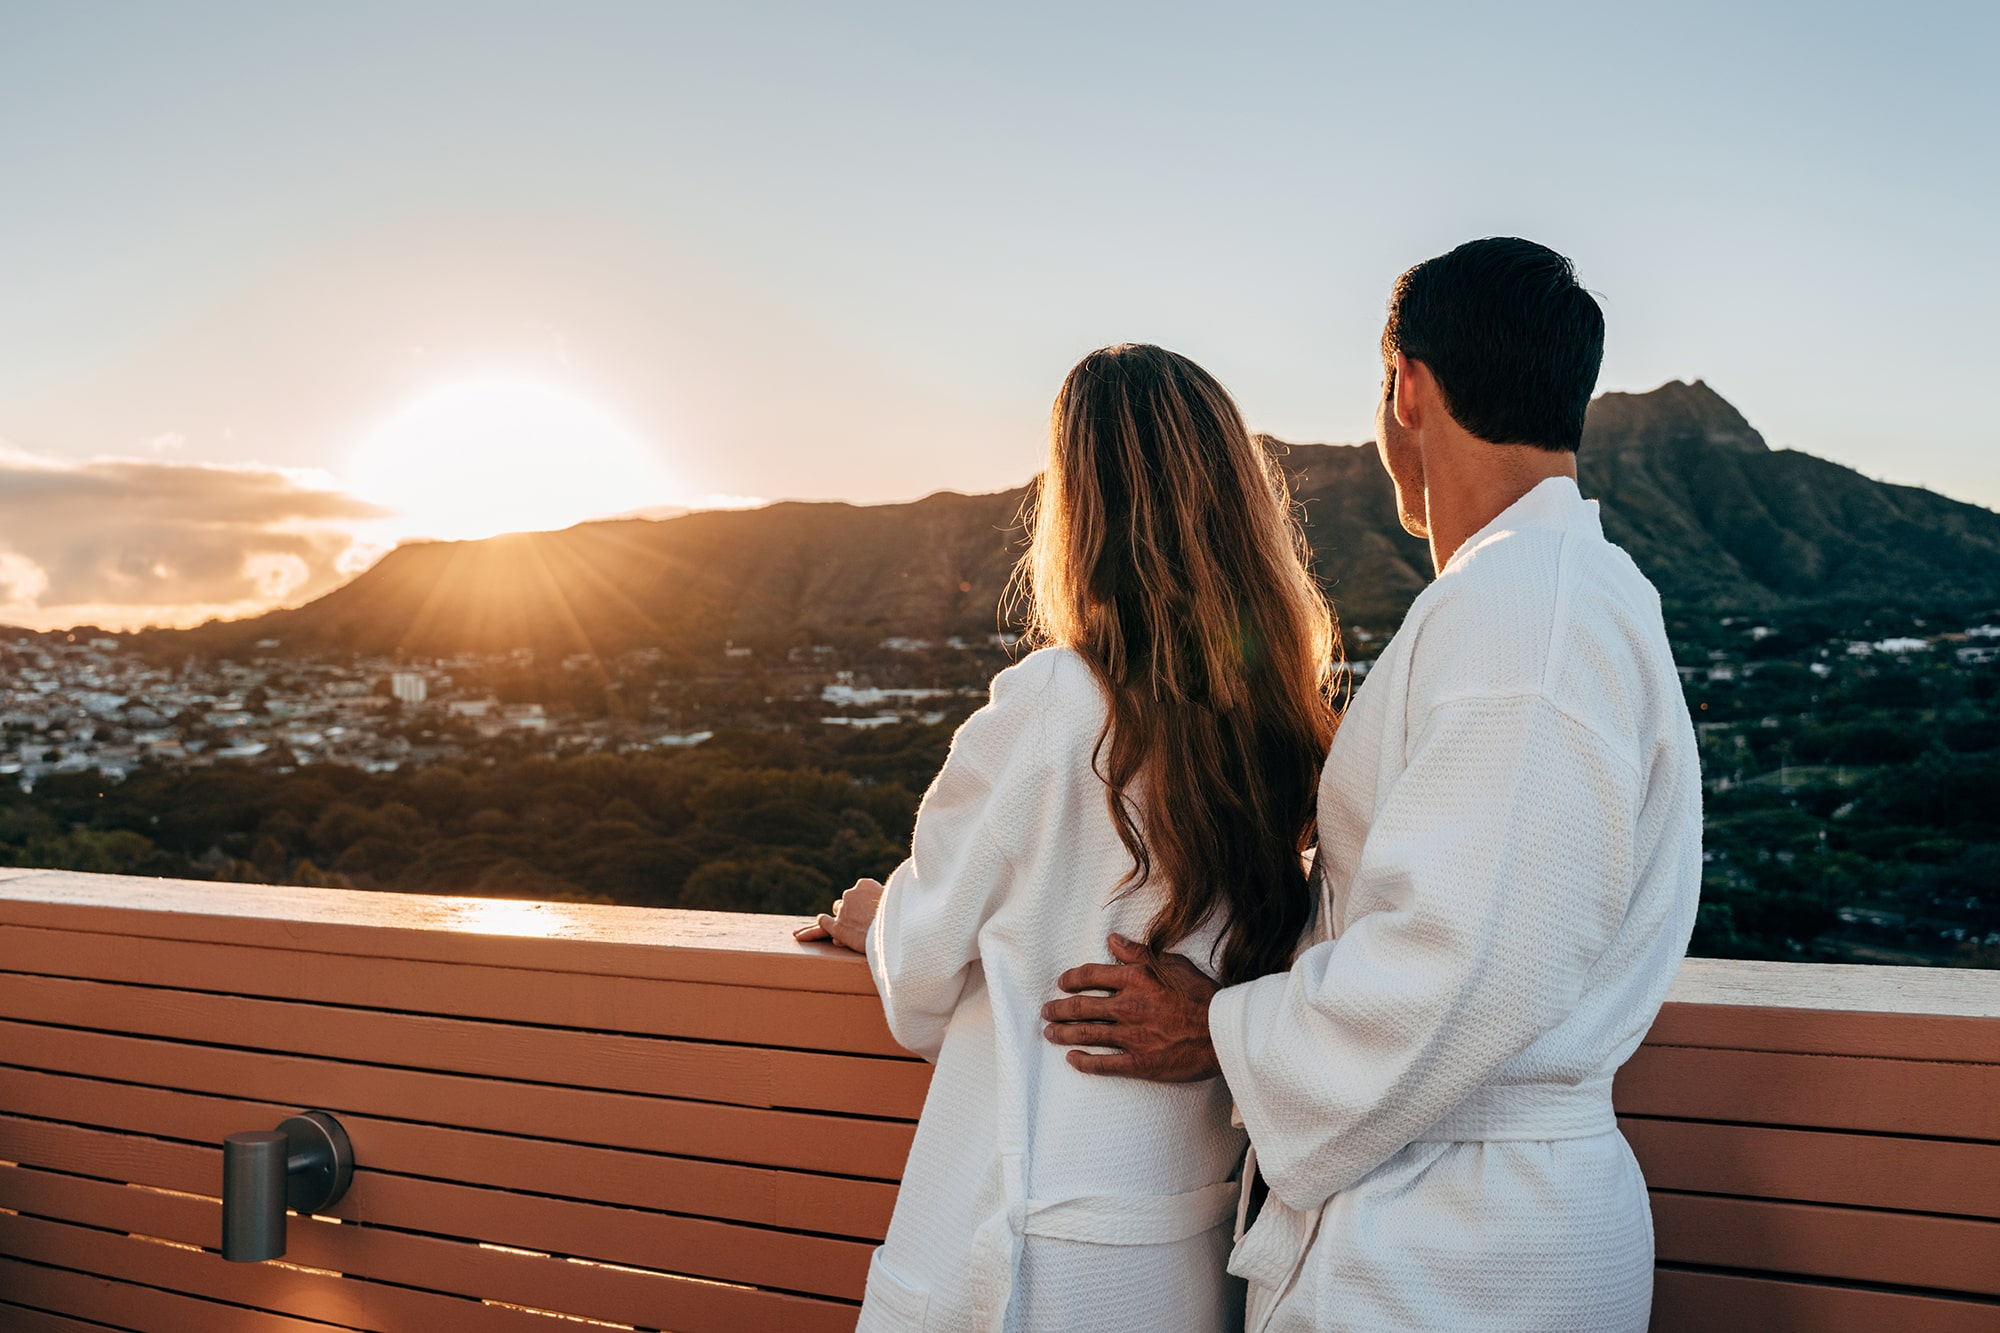 Couple in robes on balcony watching sunset